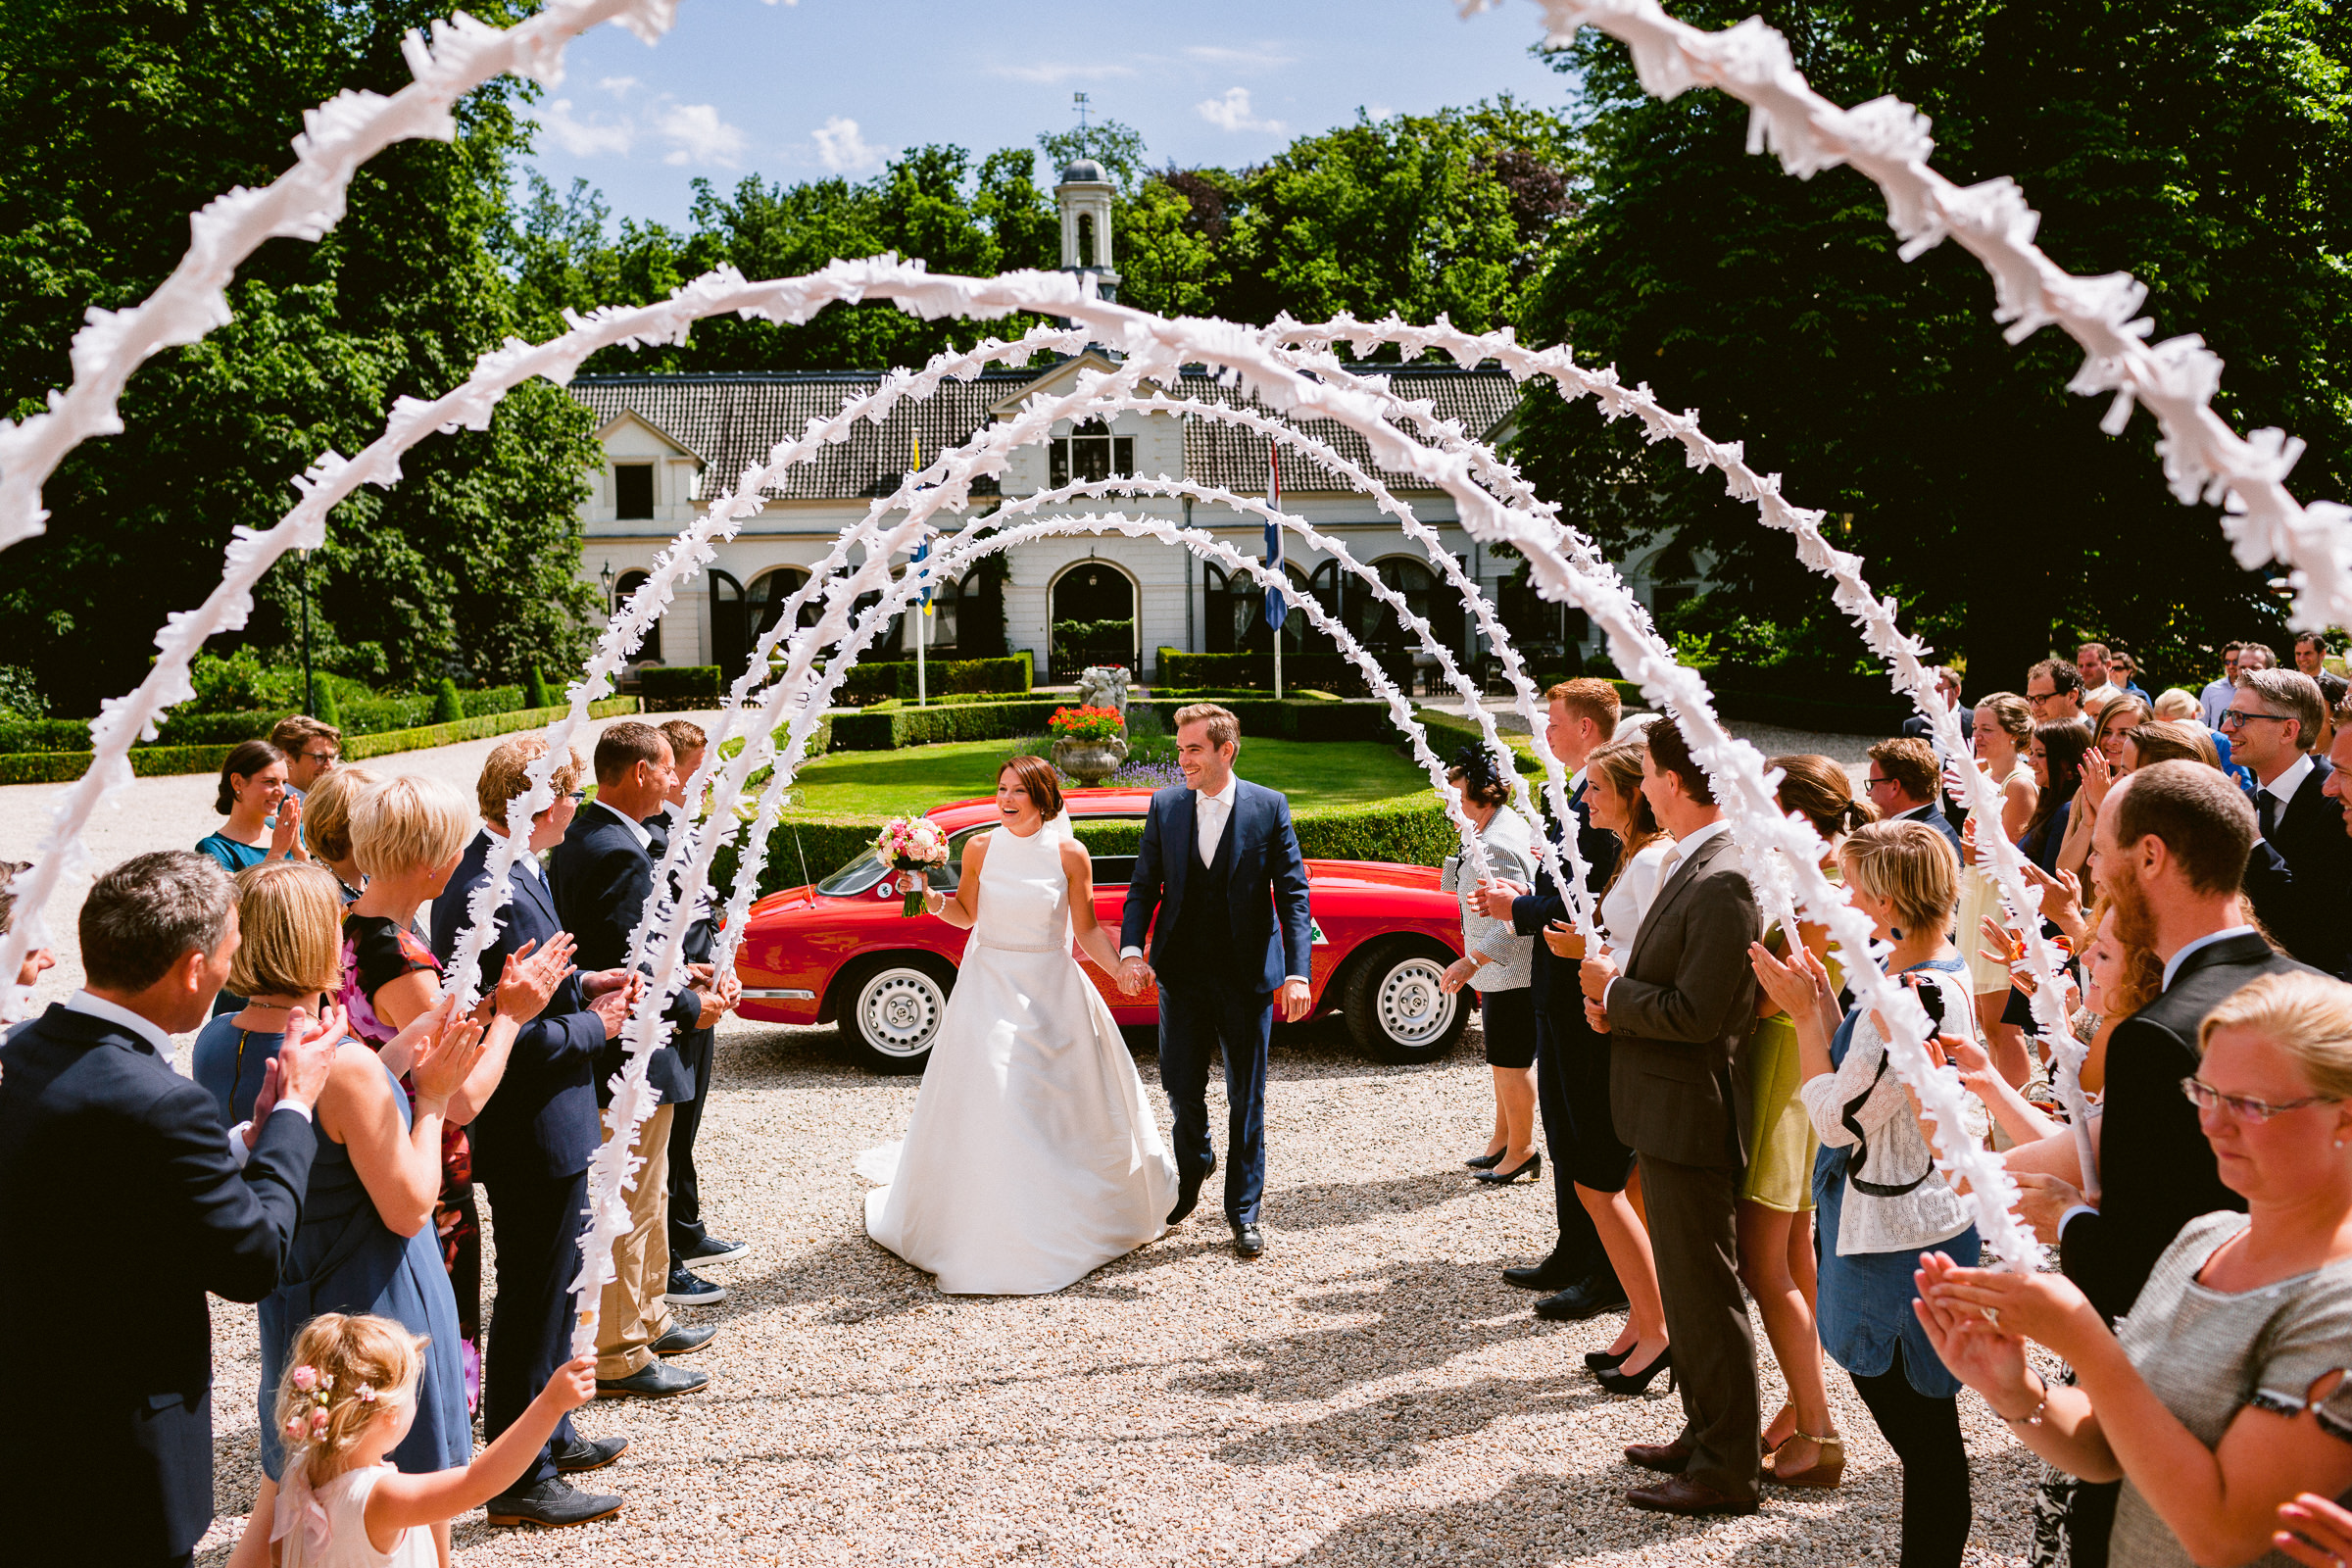 Bride and groom enter through decorative white hoops - photo by Peter van der Lingen Wedding Photography